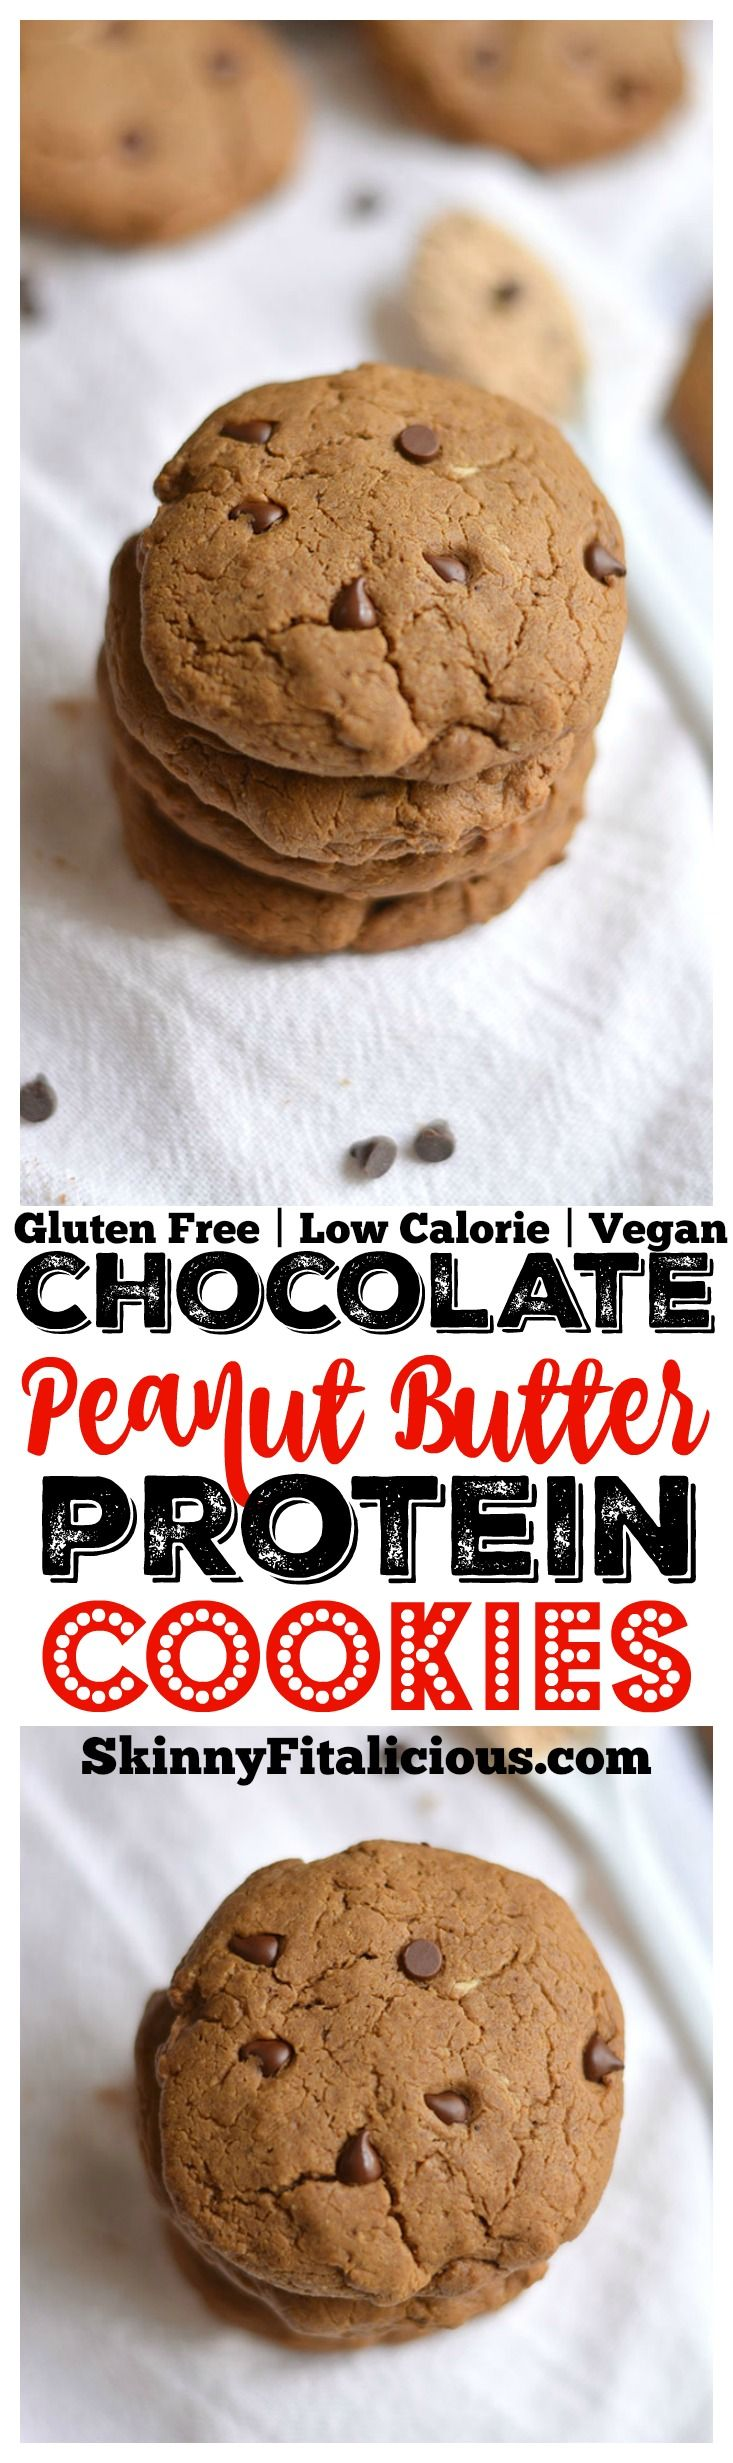 Thick & chewy Chocolate Peanut Butter Protein Cookies made with whole food ingredients, no oil or refined sugar. Just real food! An outrageously delicious snack that's only 69 calories. Gluten Free +  (Whole Food Vegan Recipes)